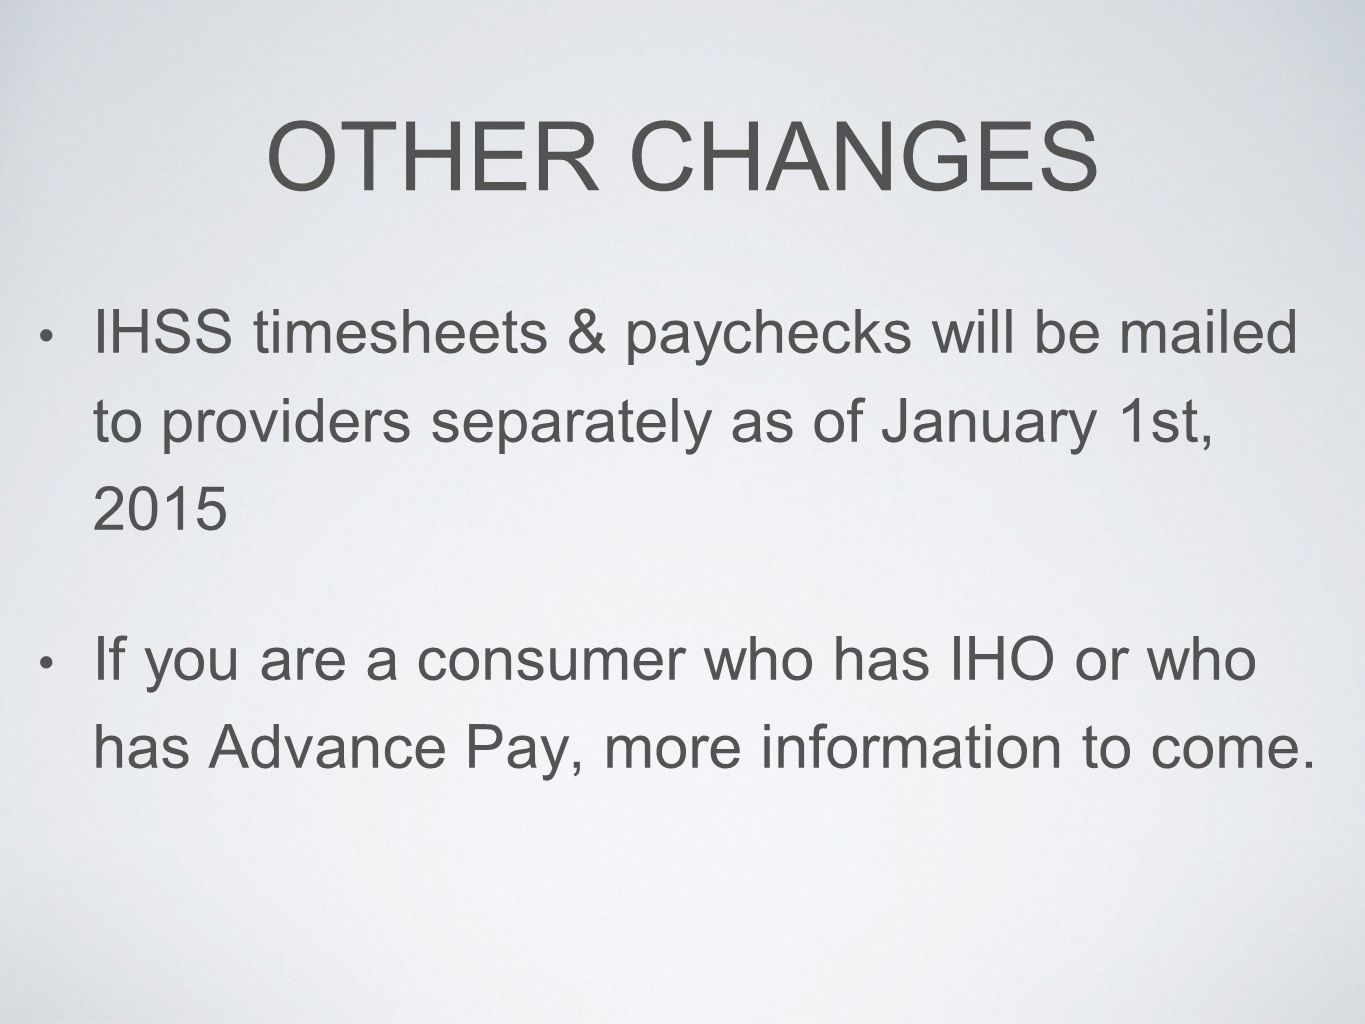 OTHER CHANGES IHSS timesheets & paychecks will be mailed to providers separately as of January 1st, 2015.